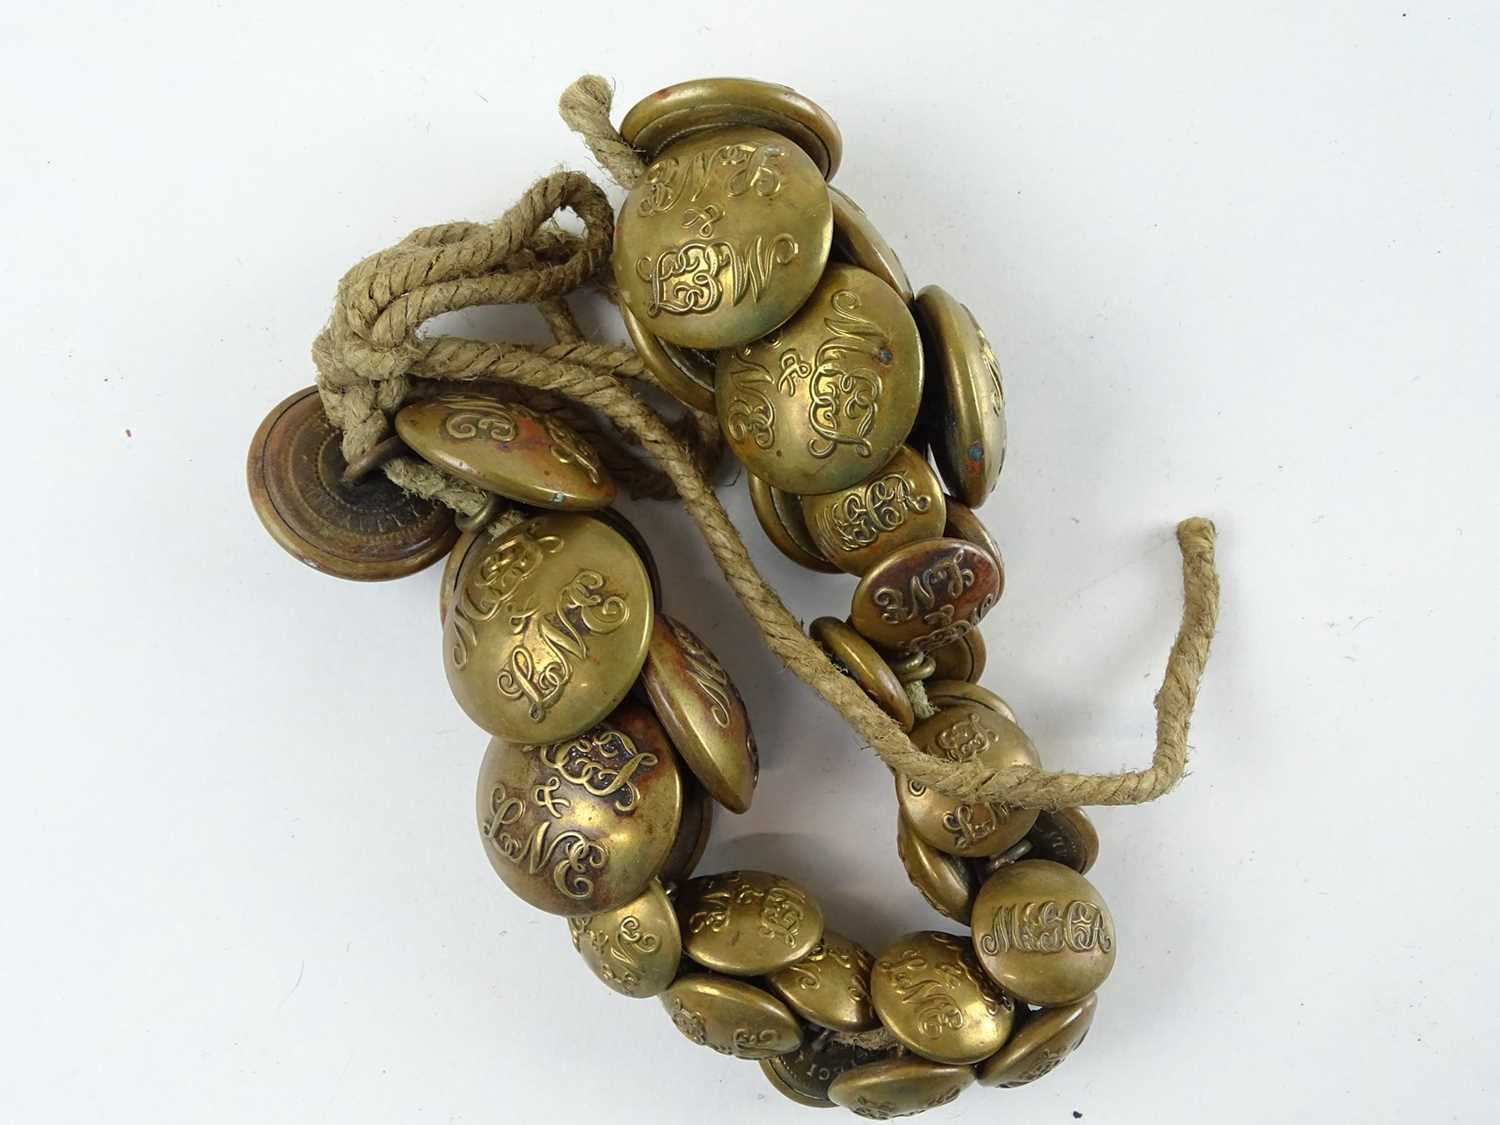 A quantity of brass uniform buttons - all appear to be for the Metropolitan Railway and associated - Image 4 of 6